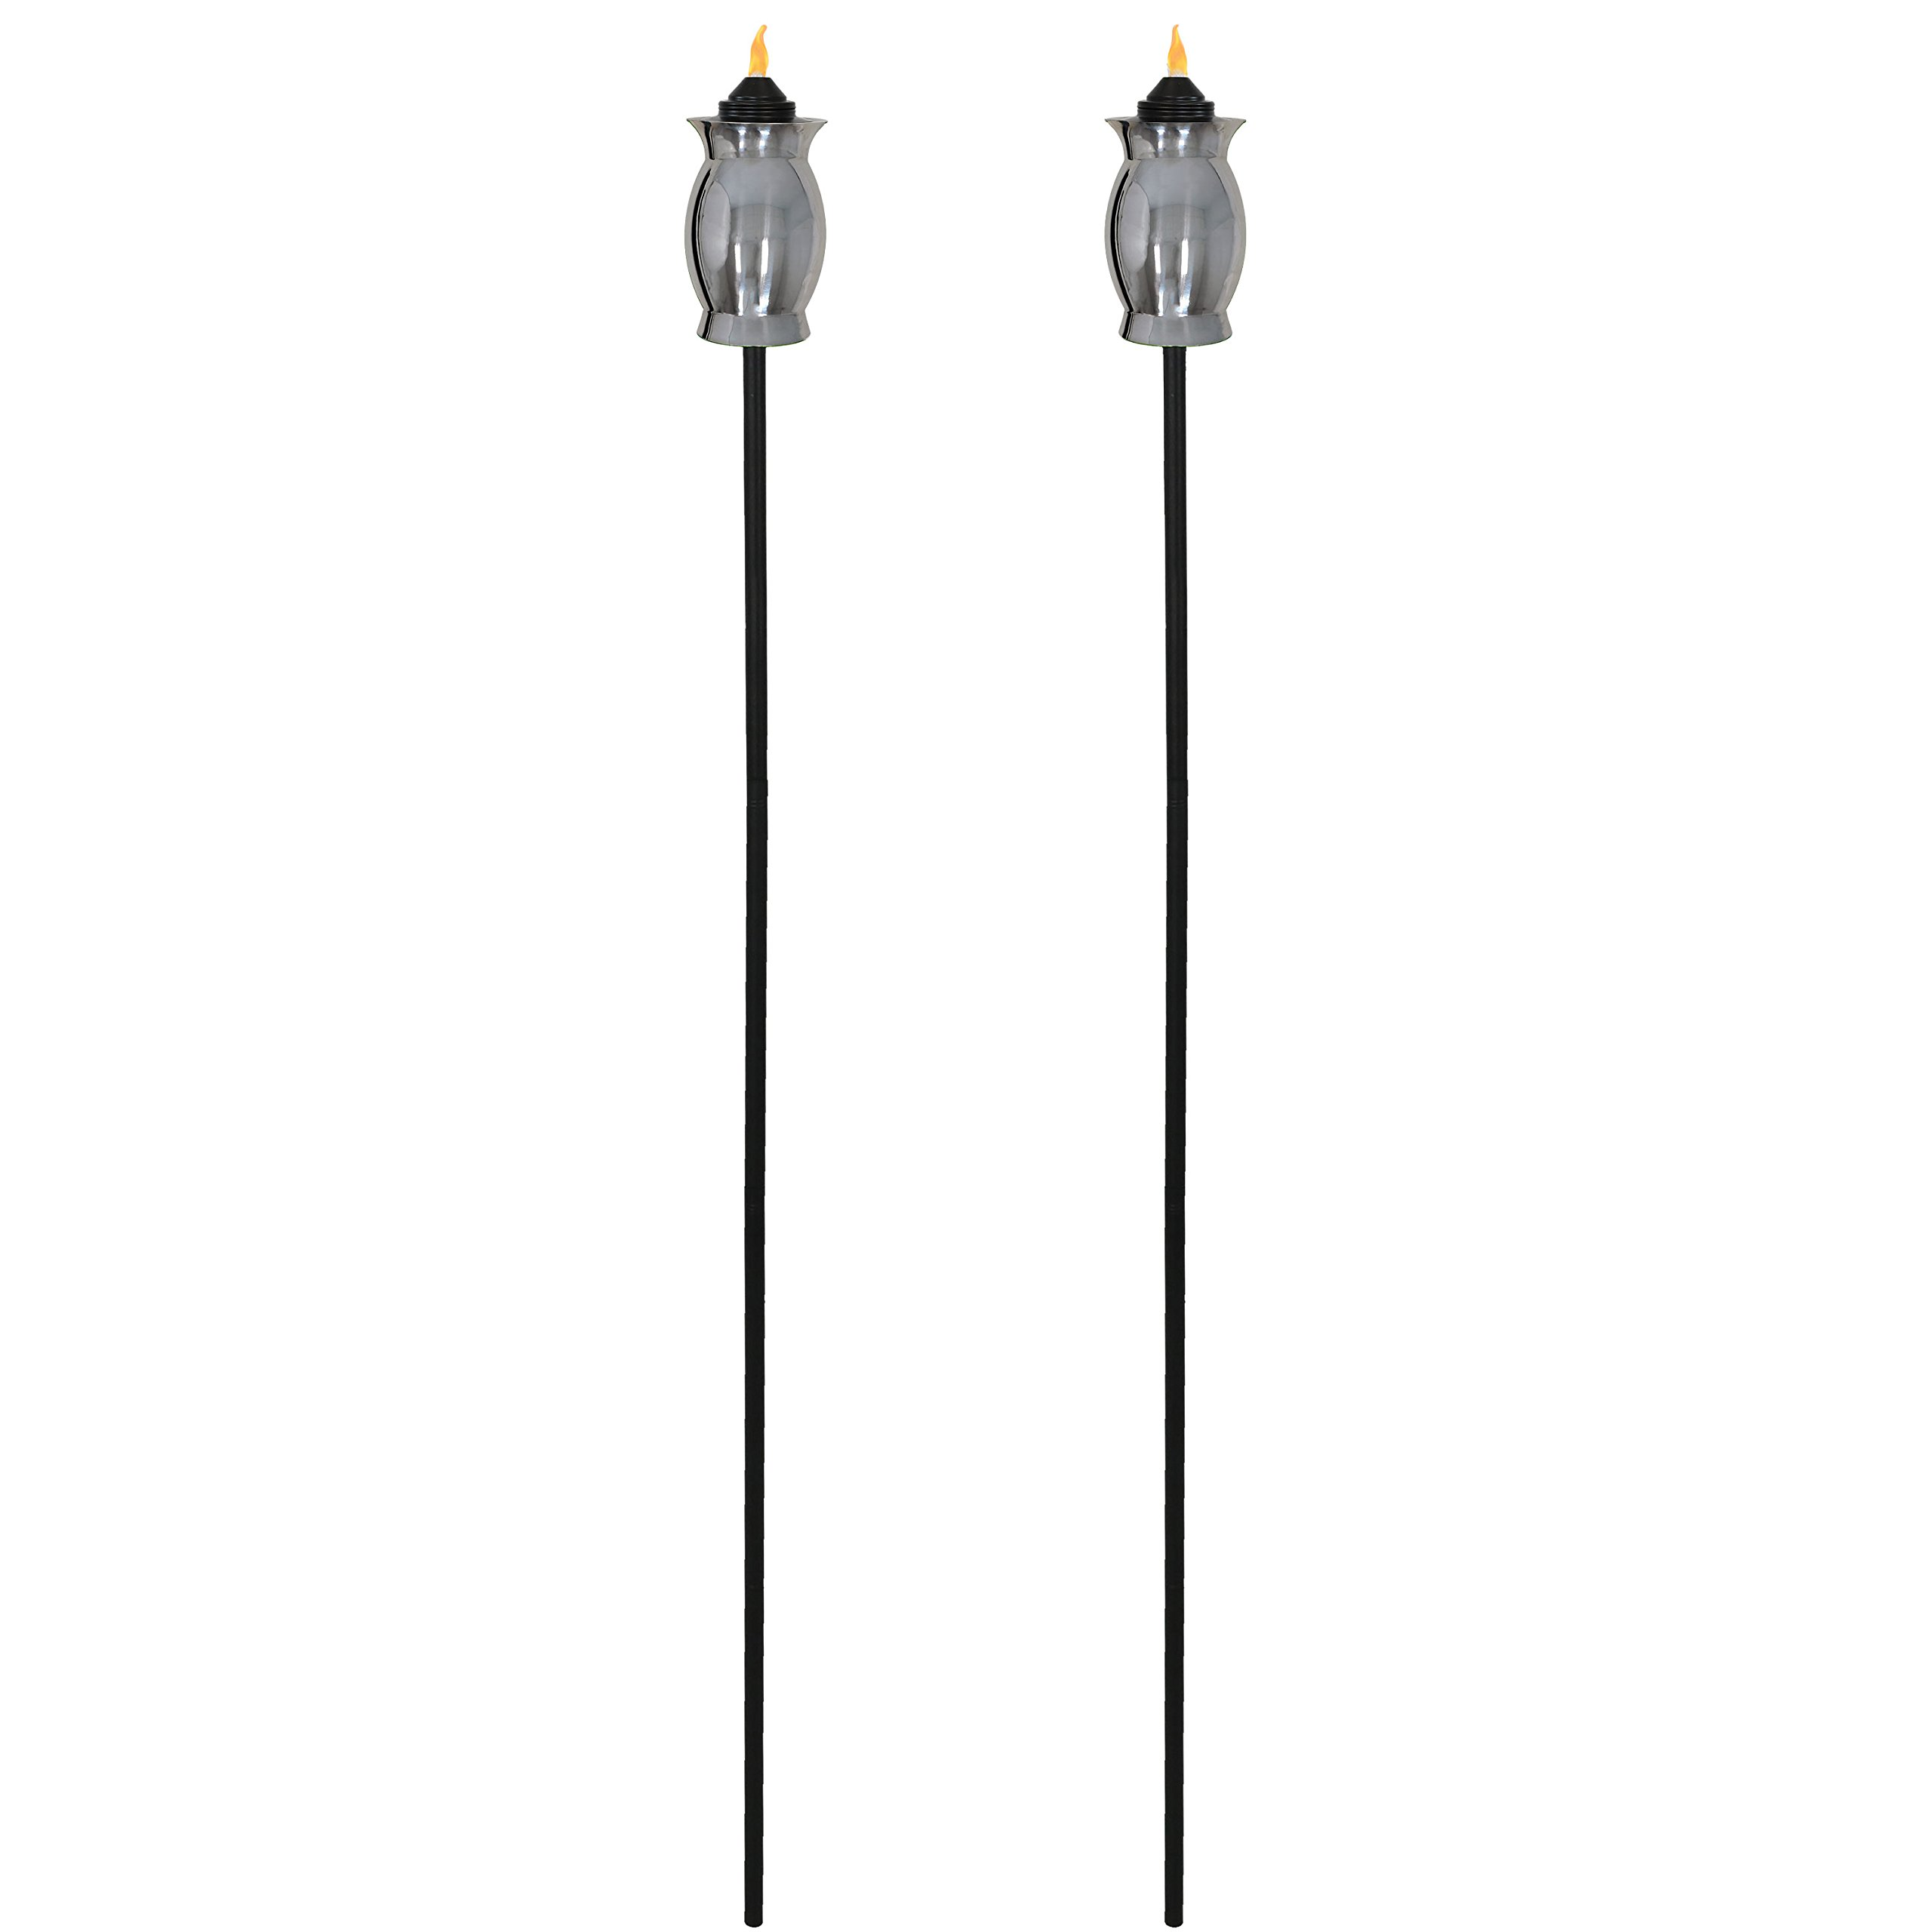 Sunnydaze Stainless Steel Outdoor Torches with Black Snuffer, Metal Patio Citronella Torch, 23- to 65-Inch Adjustable Height, 3-in-1, Set of 2 by Sunnydaze Decor (Image #4)